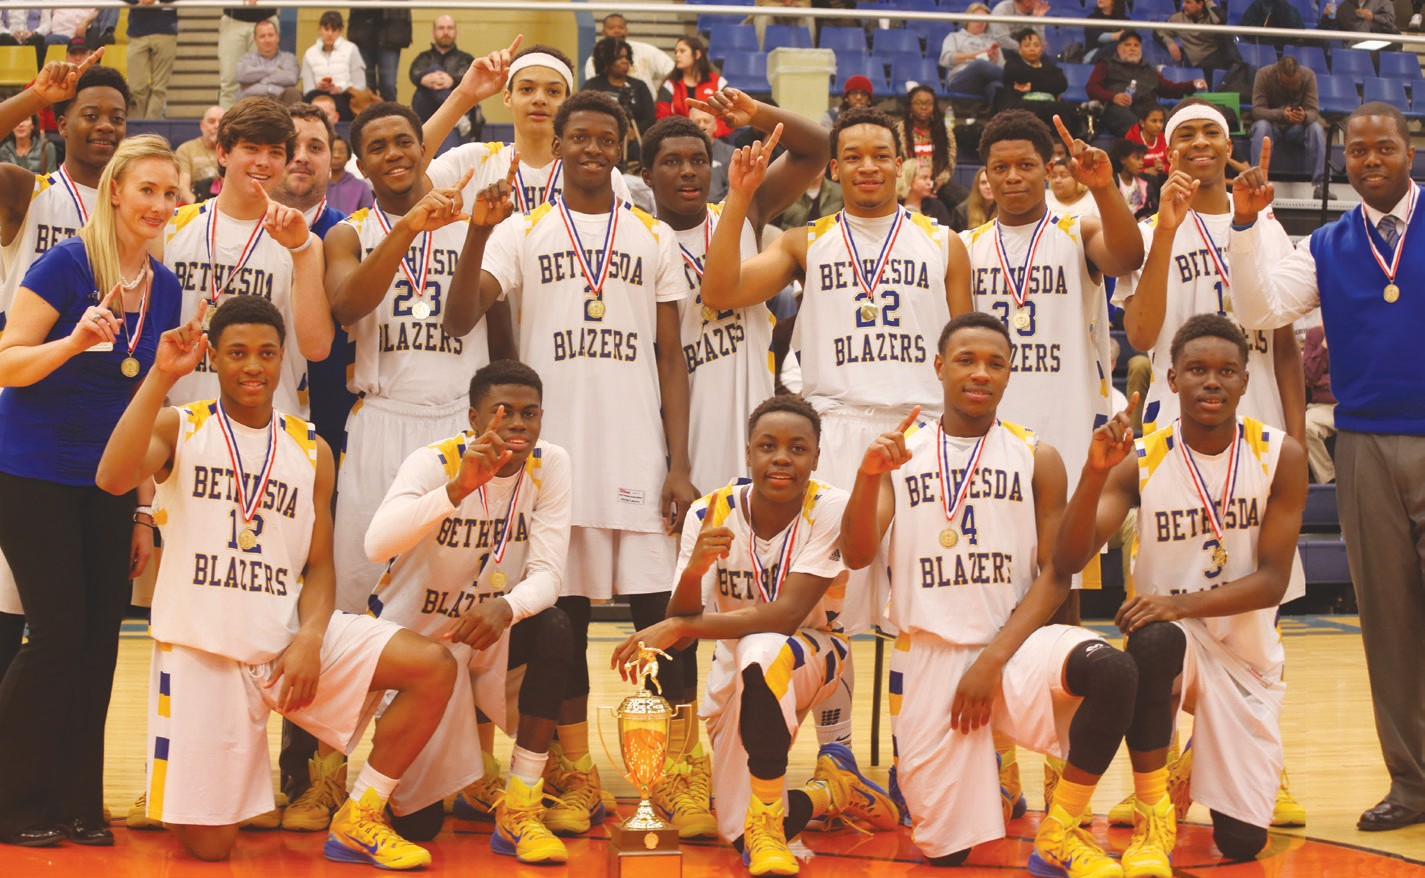 2015 Boys State Basketball Championship Team